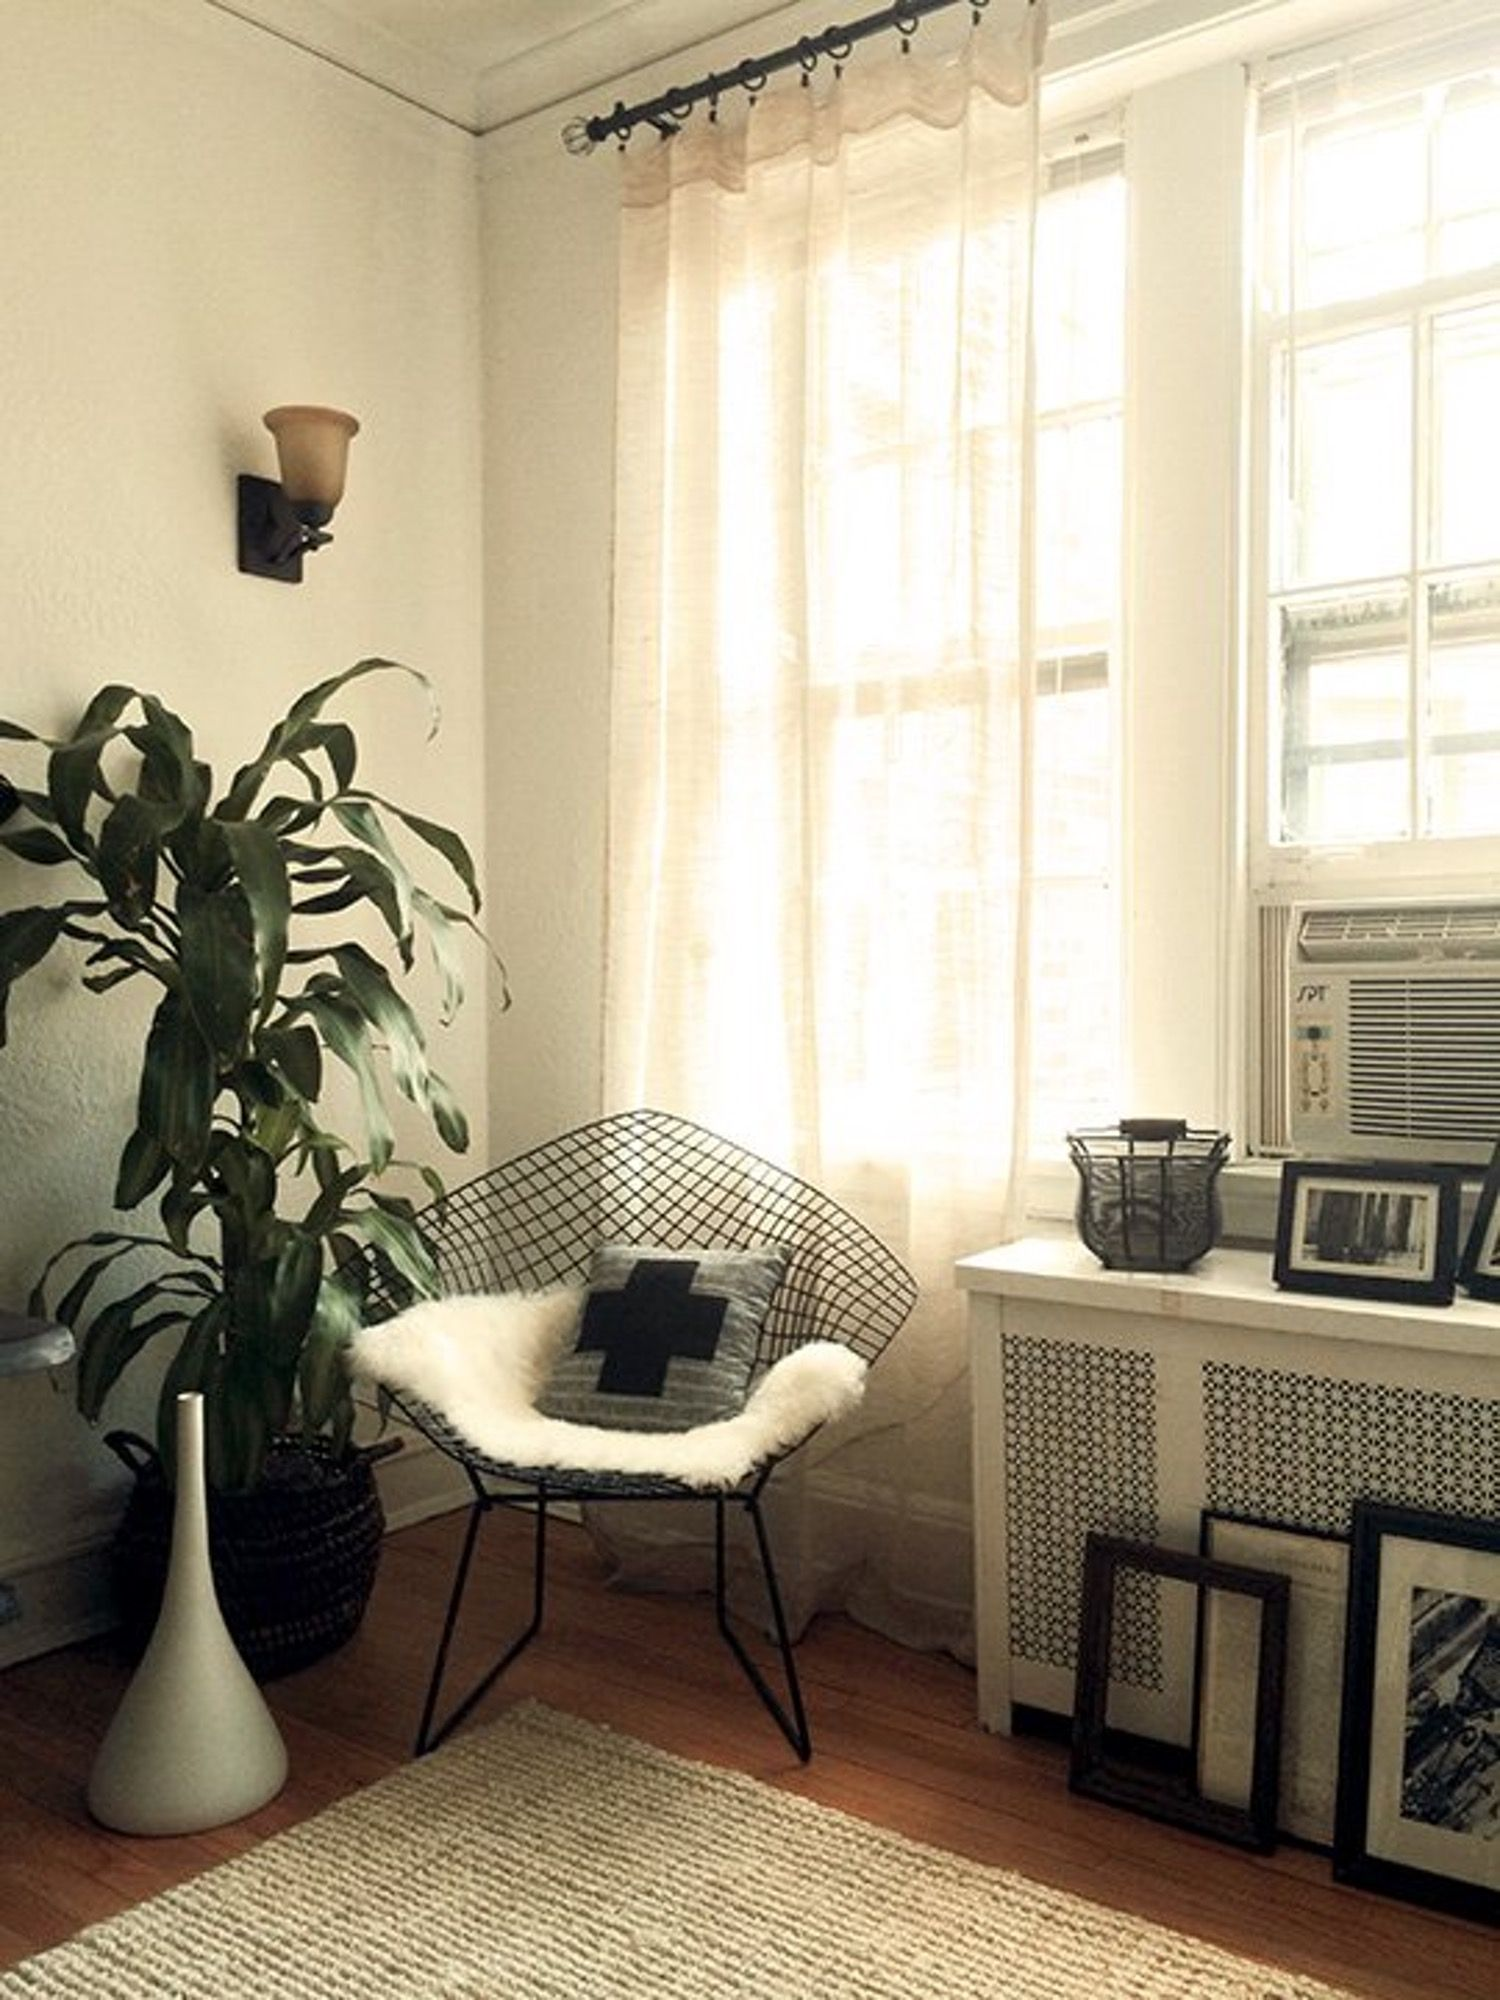 How To Measure for Curtains, Shades and Blinds | Apartment therapy ...